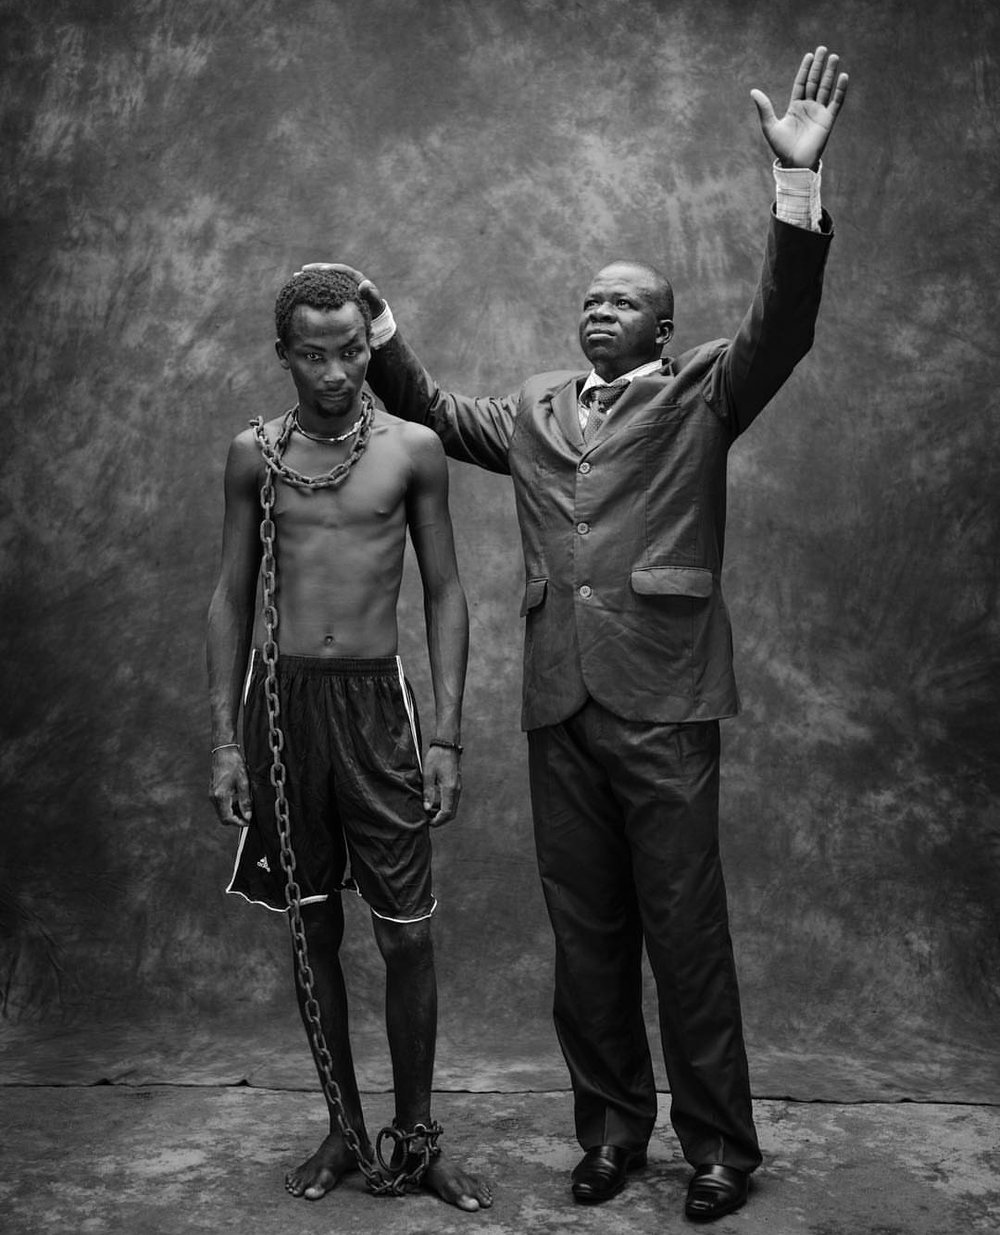 Togo: Pentacostal pastor Lare Damitote Bertrand with a chained, mentally ill man he claims to heal with prayer. Image: by Robin Hammond for National Geographic